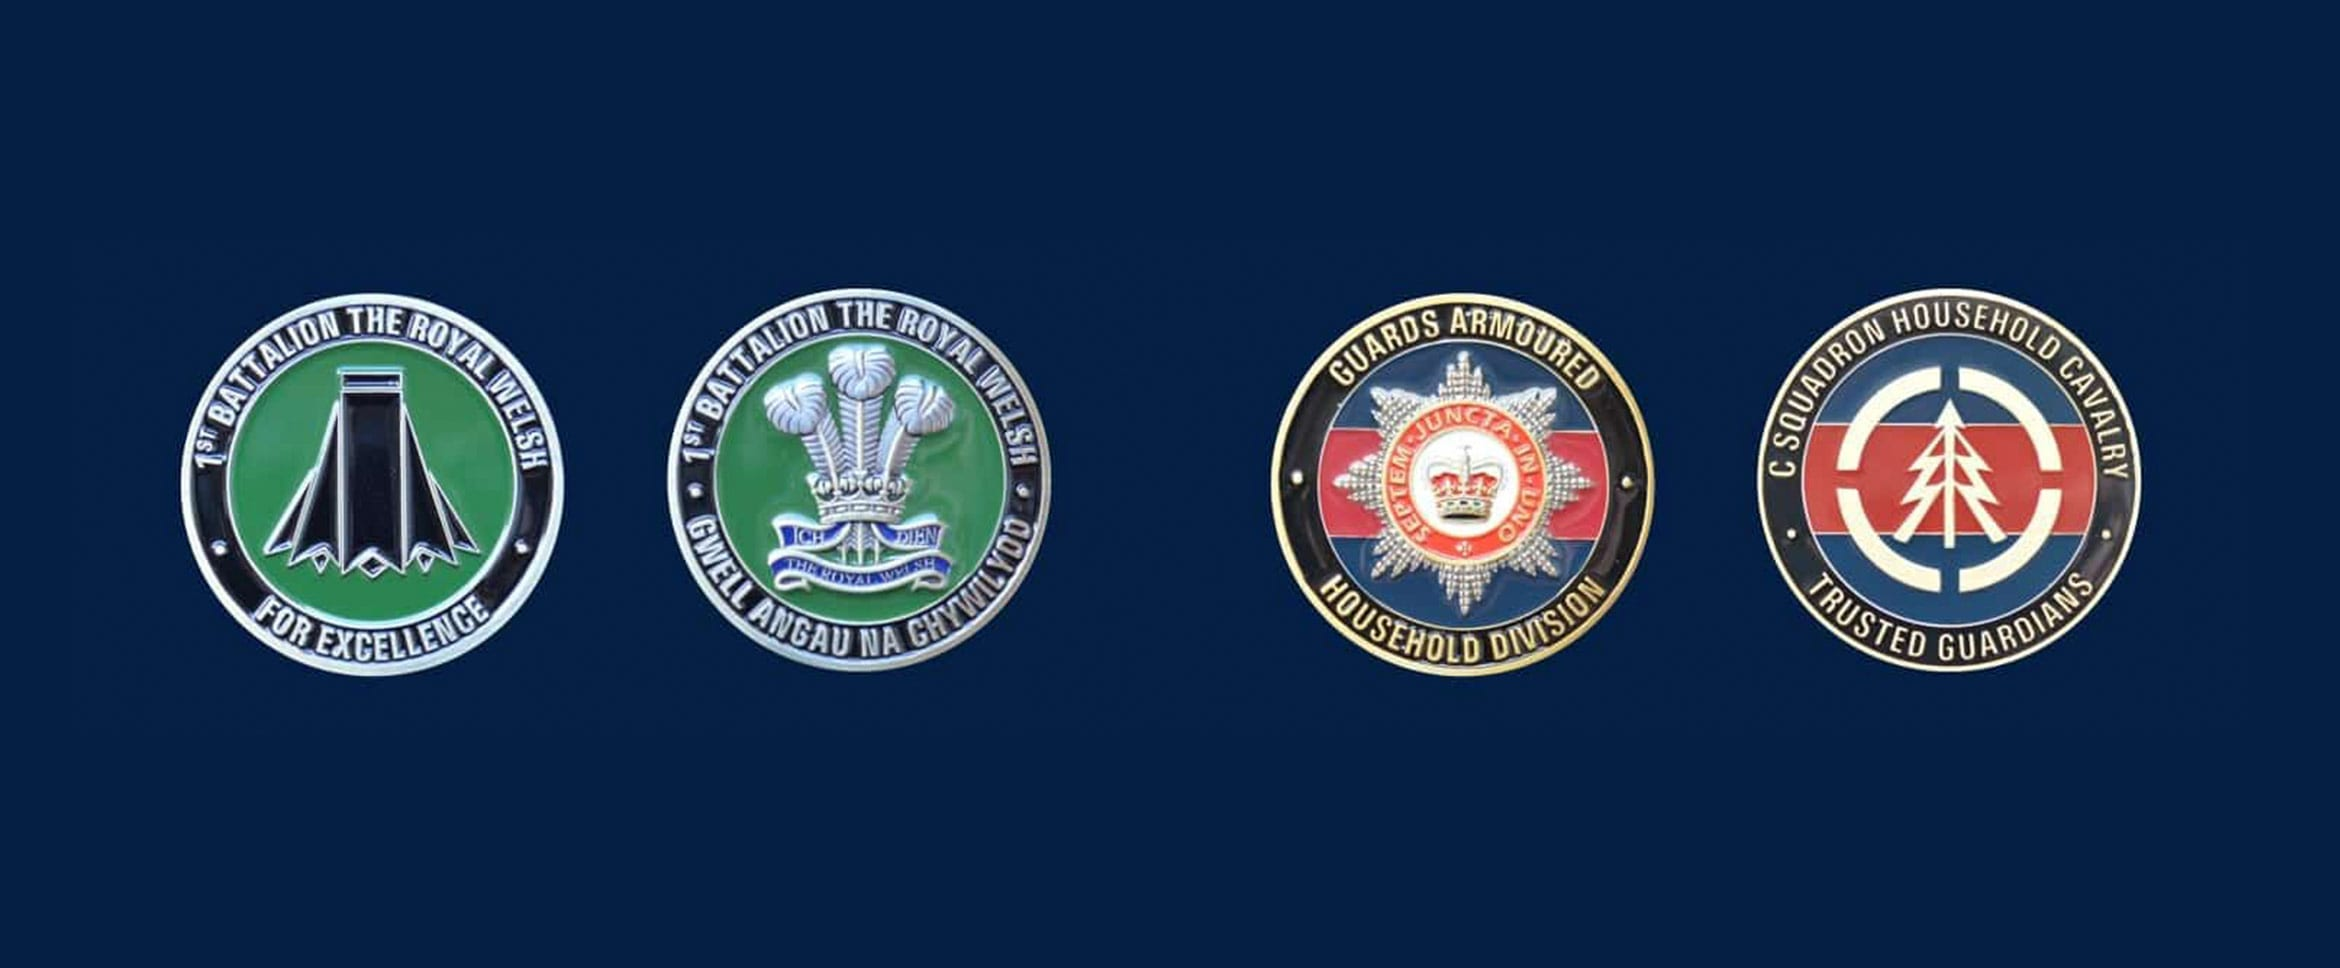 British Armed Forces Challenge Coins